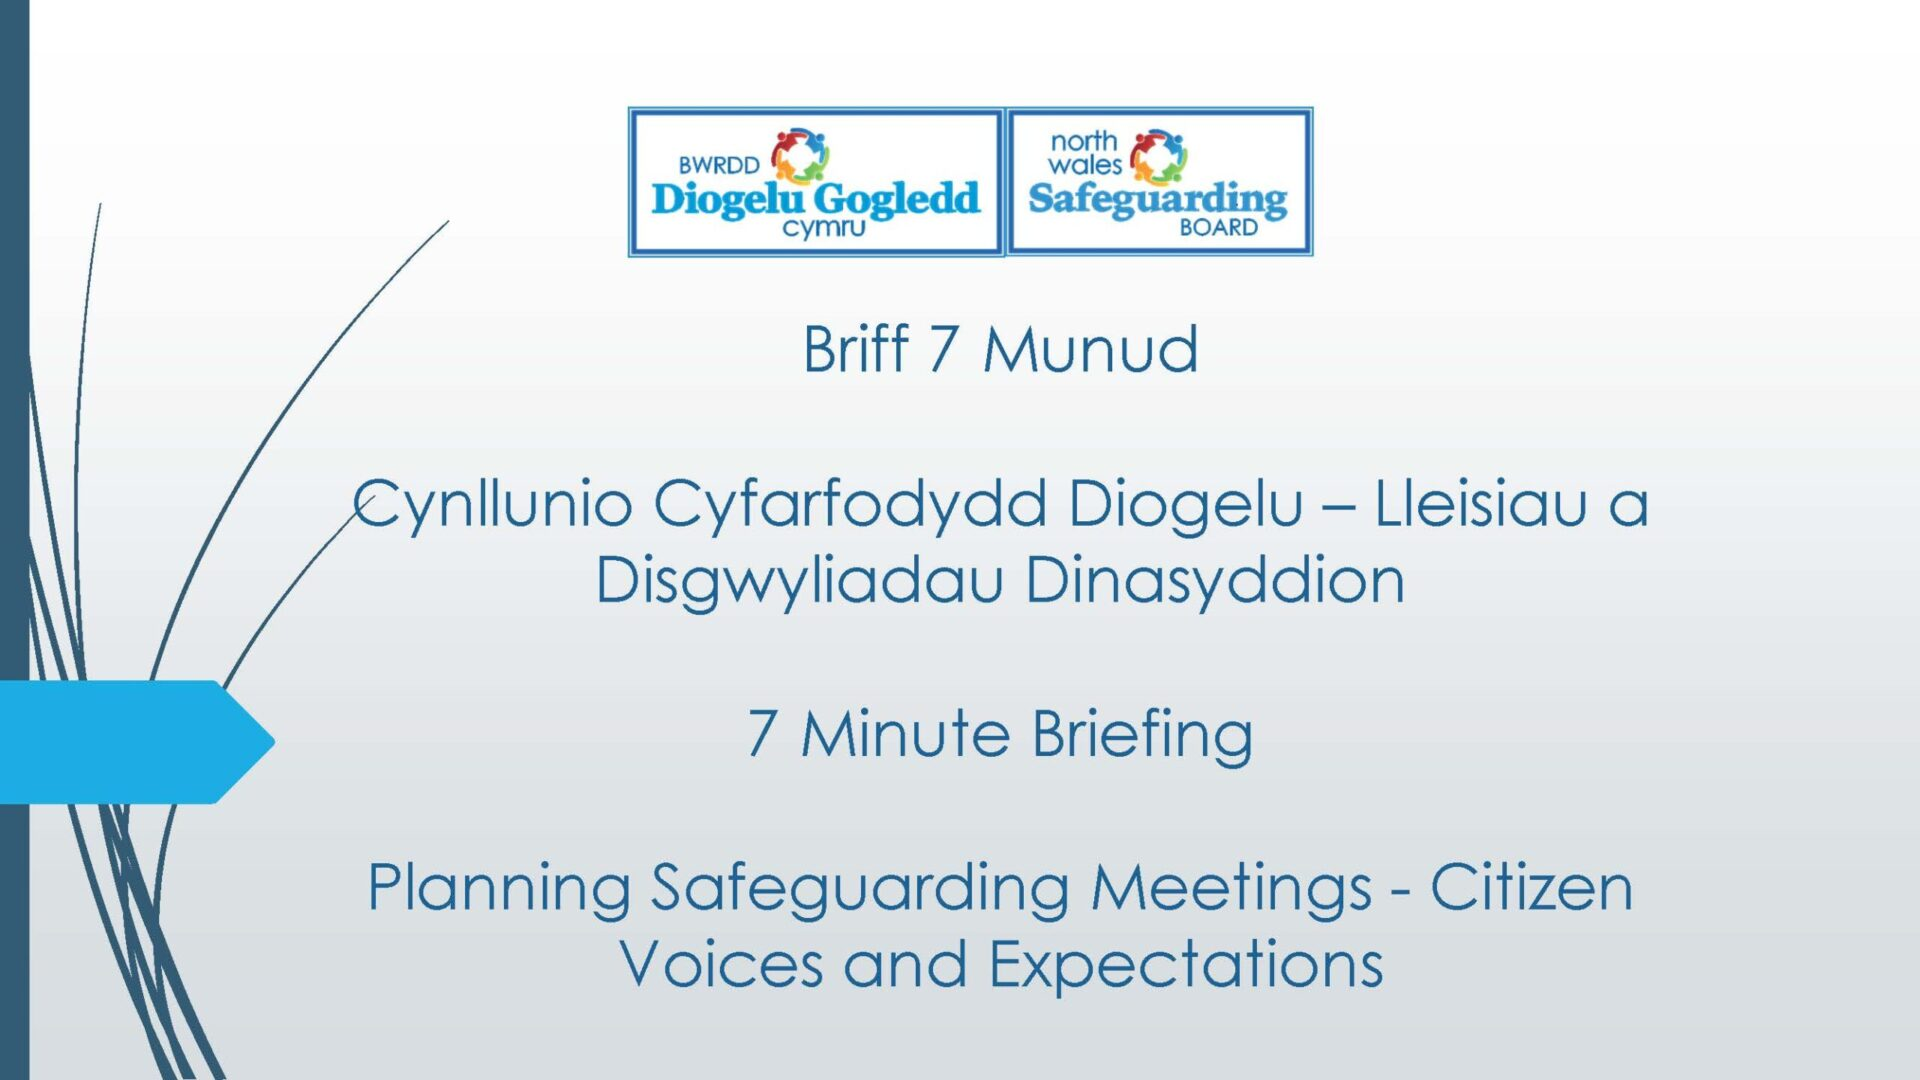 Planning Safeguarding Meetings - Citizen Voices and Expectations